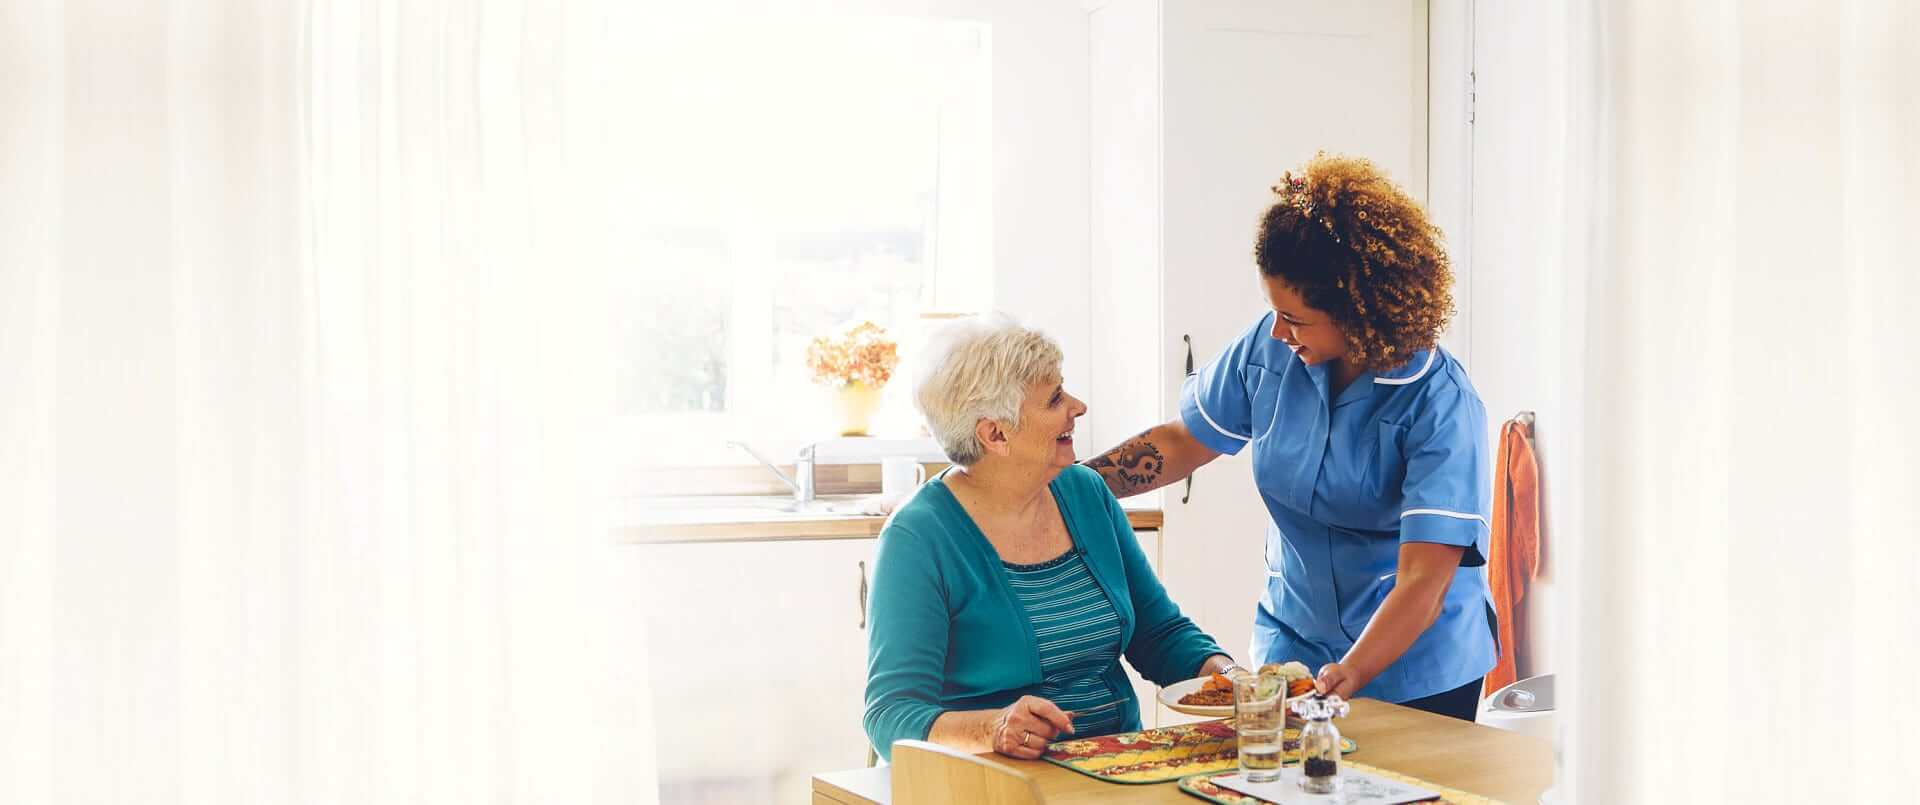 Caregiver serving the elder woman her meal